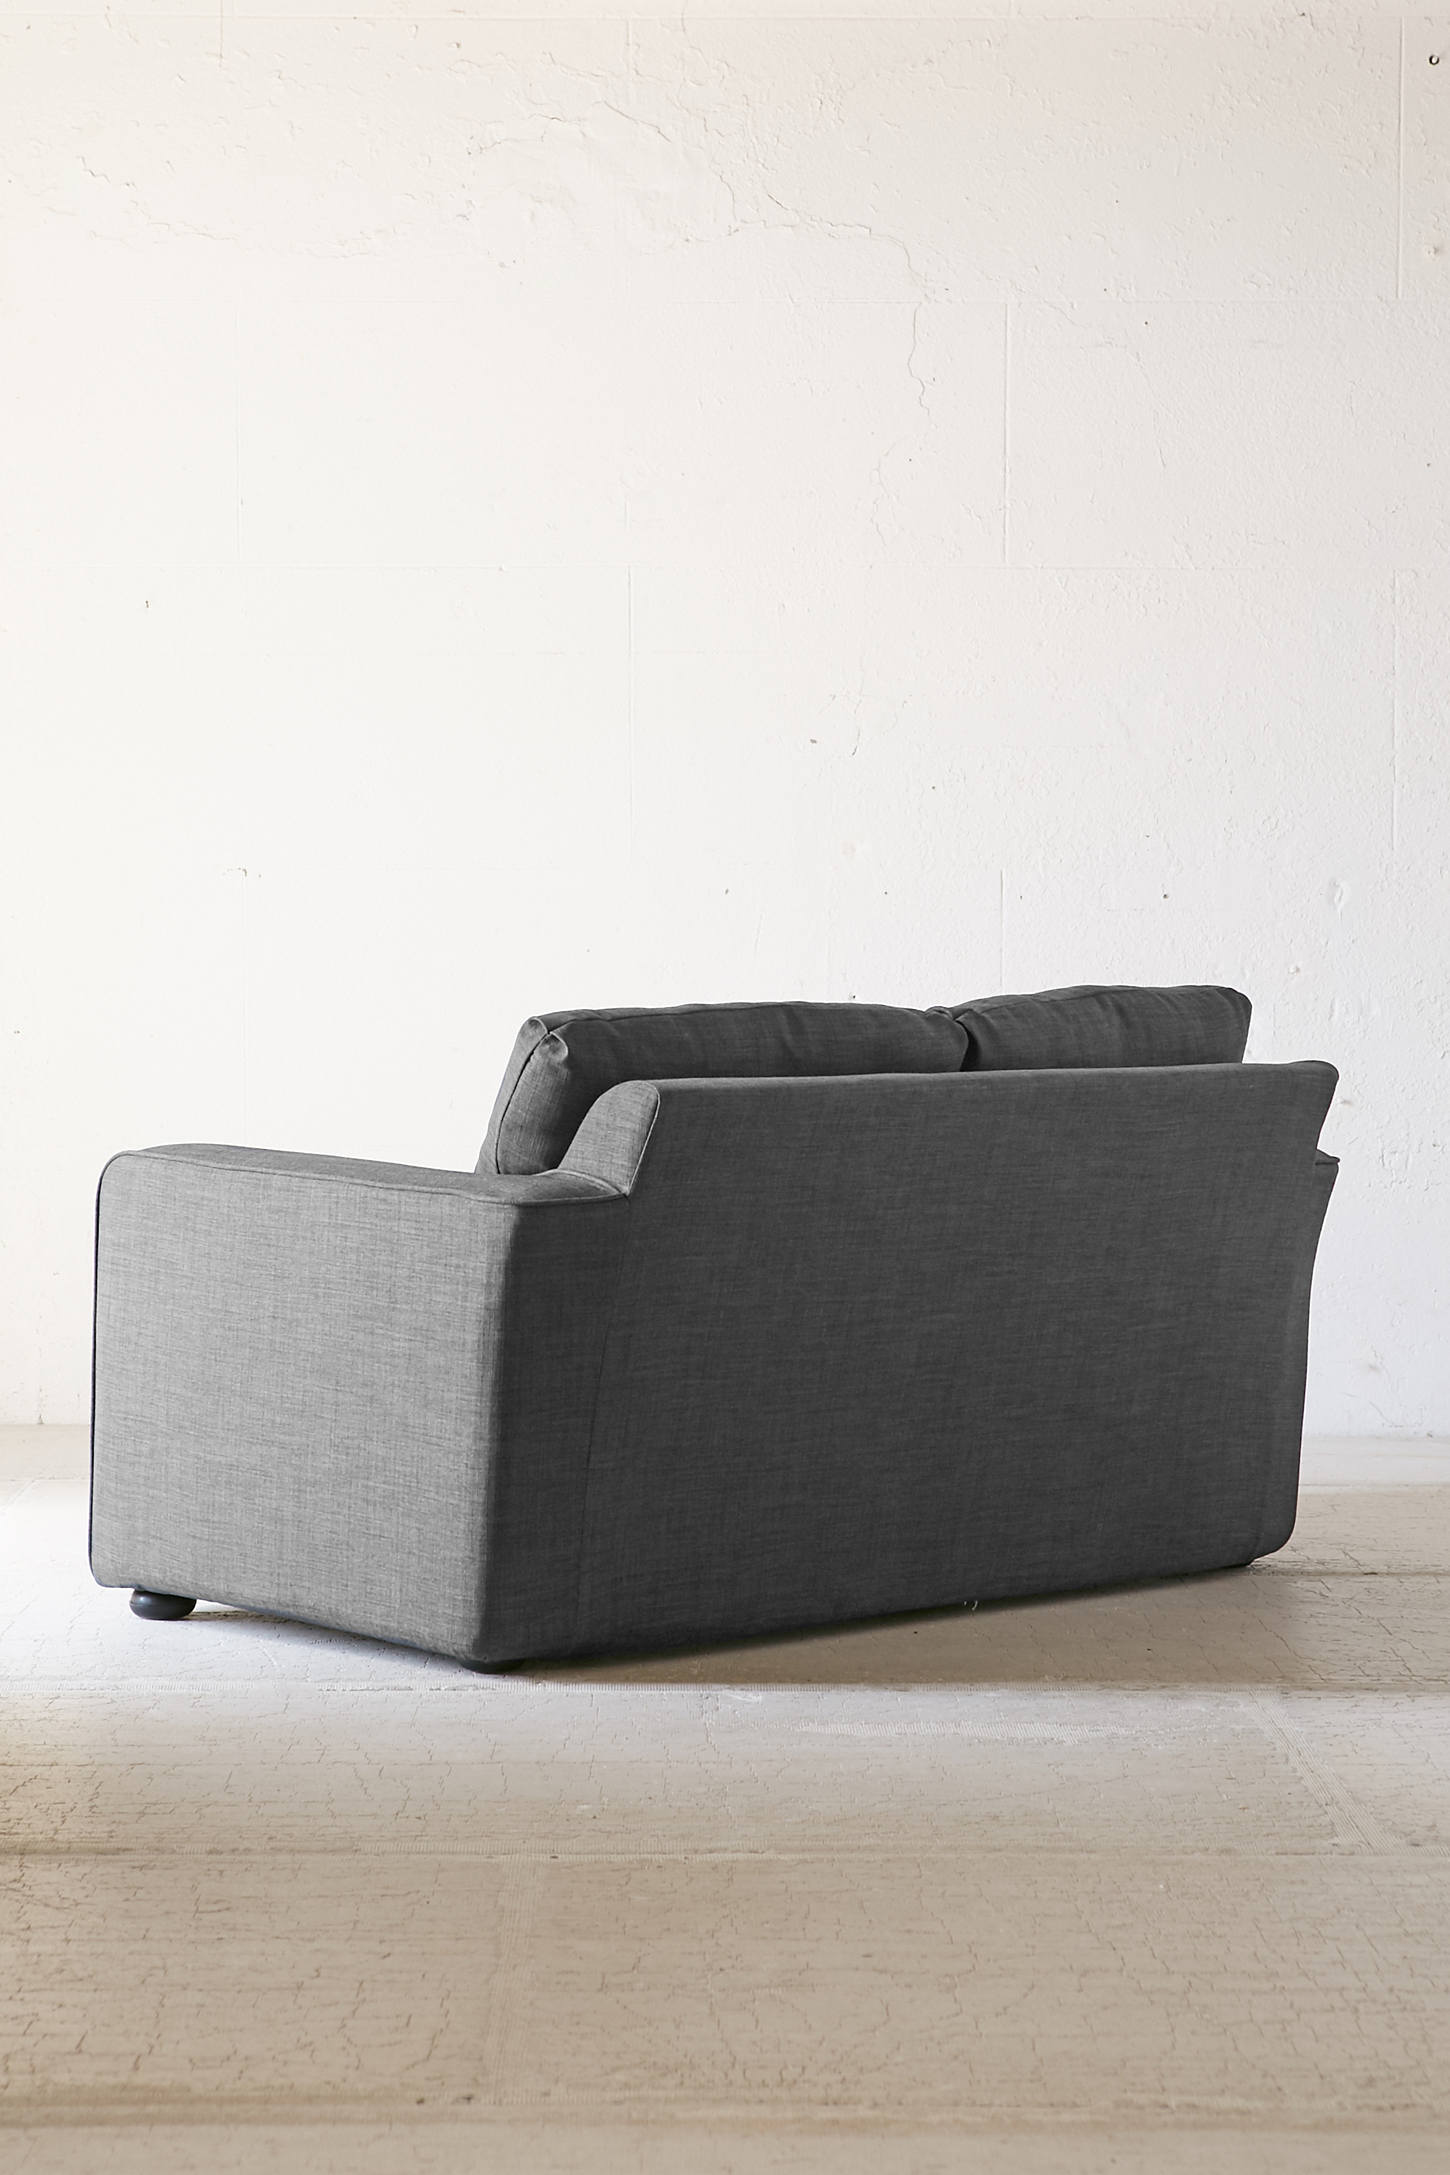 Castro Convertible Sofa Bed Images Elegant And